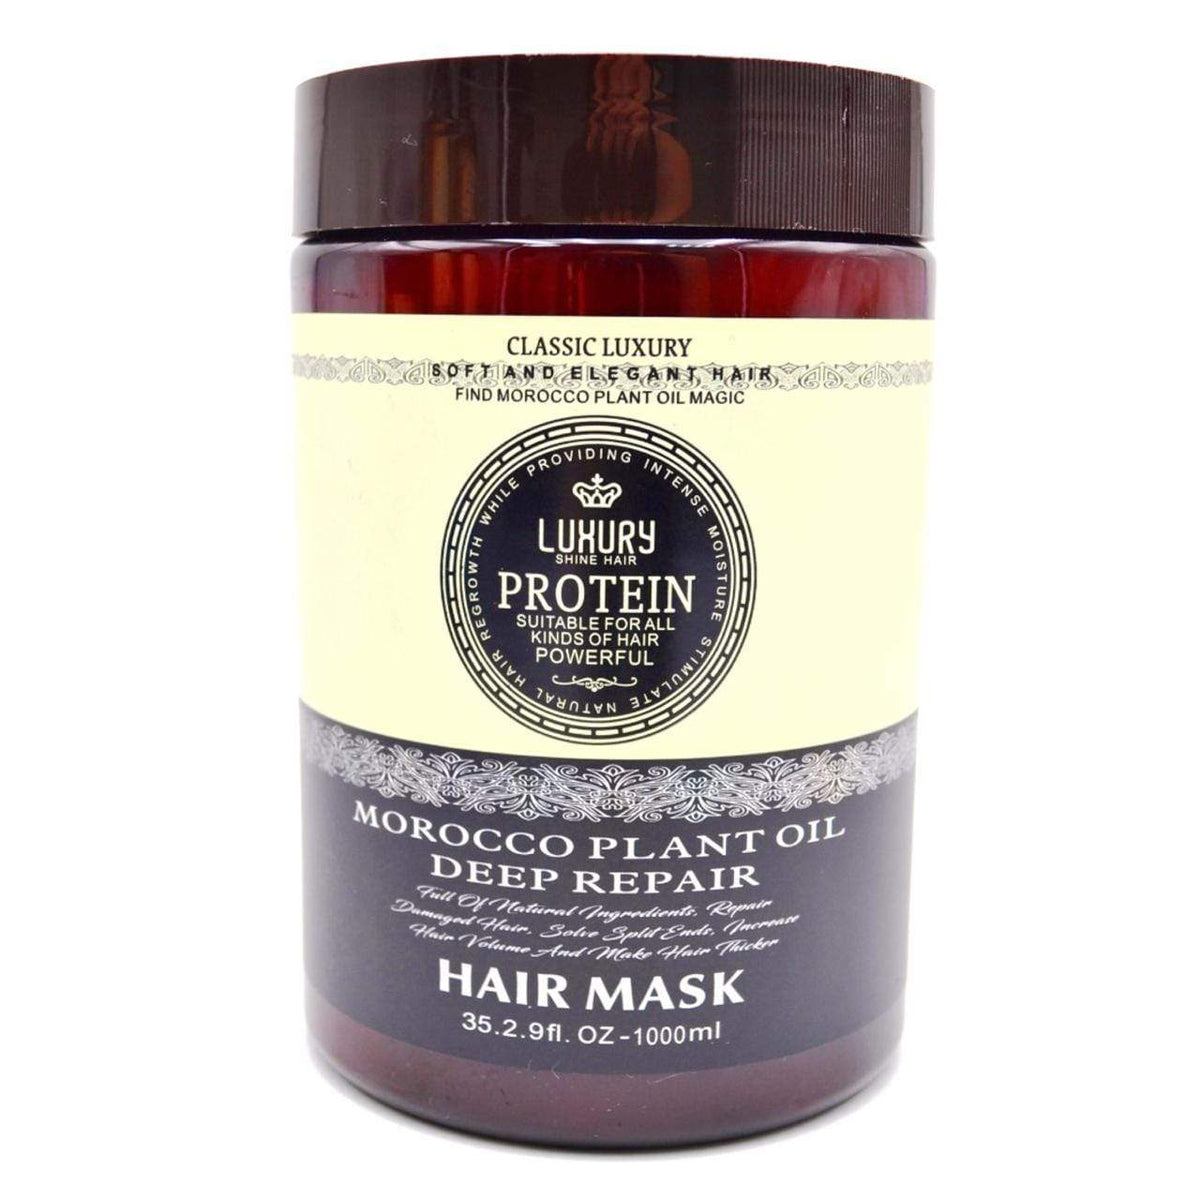 Morocco oil, Hair mask, Hair repairing mask, Damaged hair mask, Morocco oil hair mask, Protein hair mask